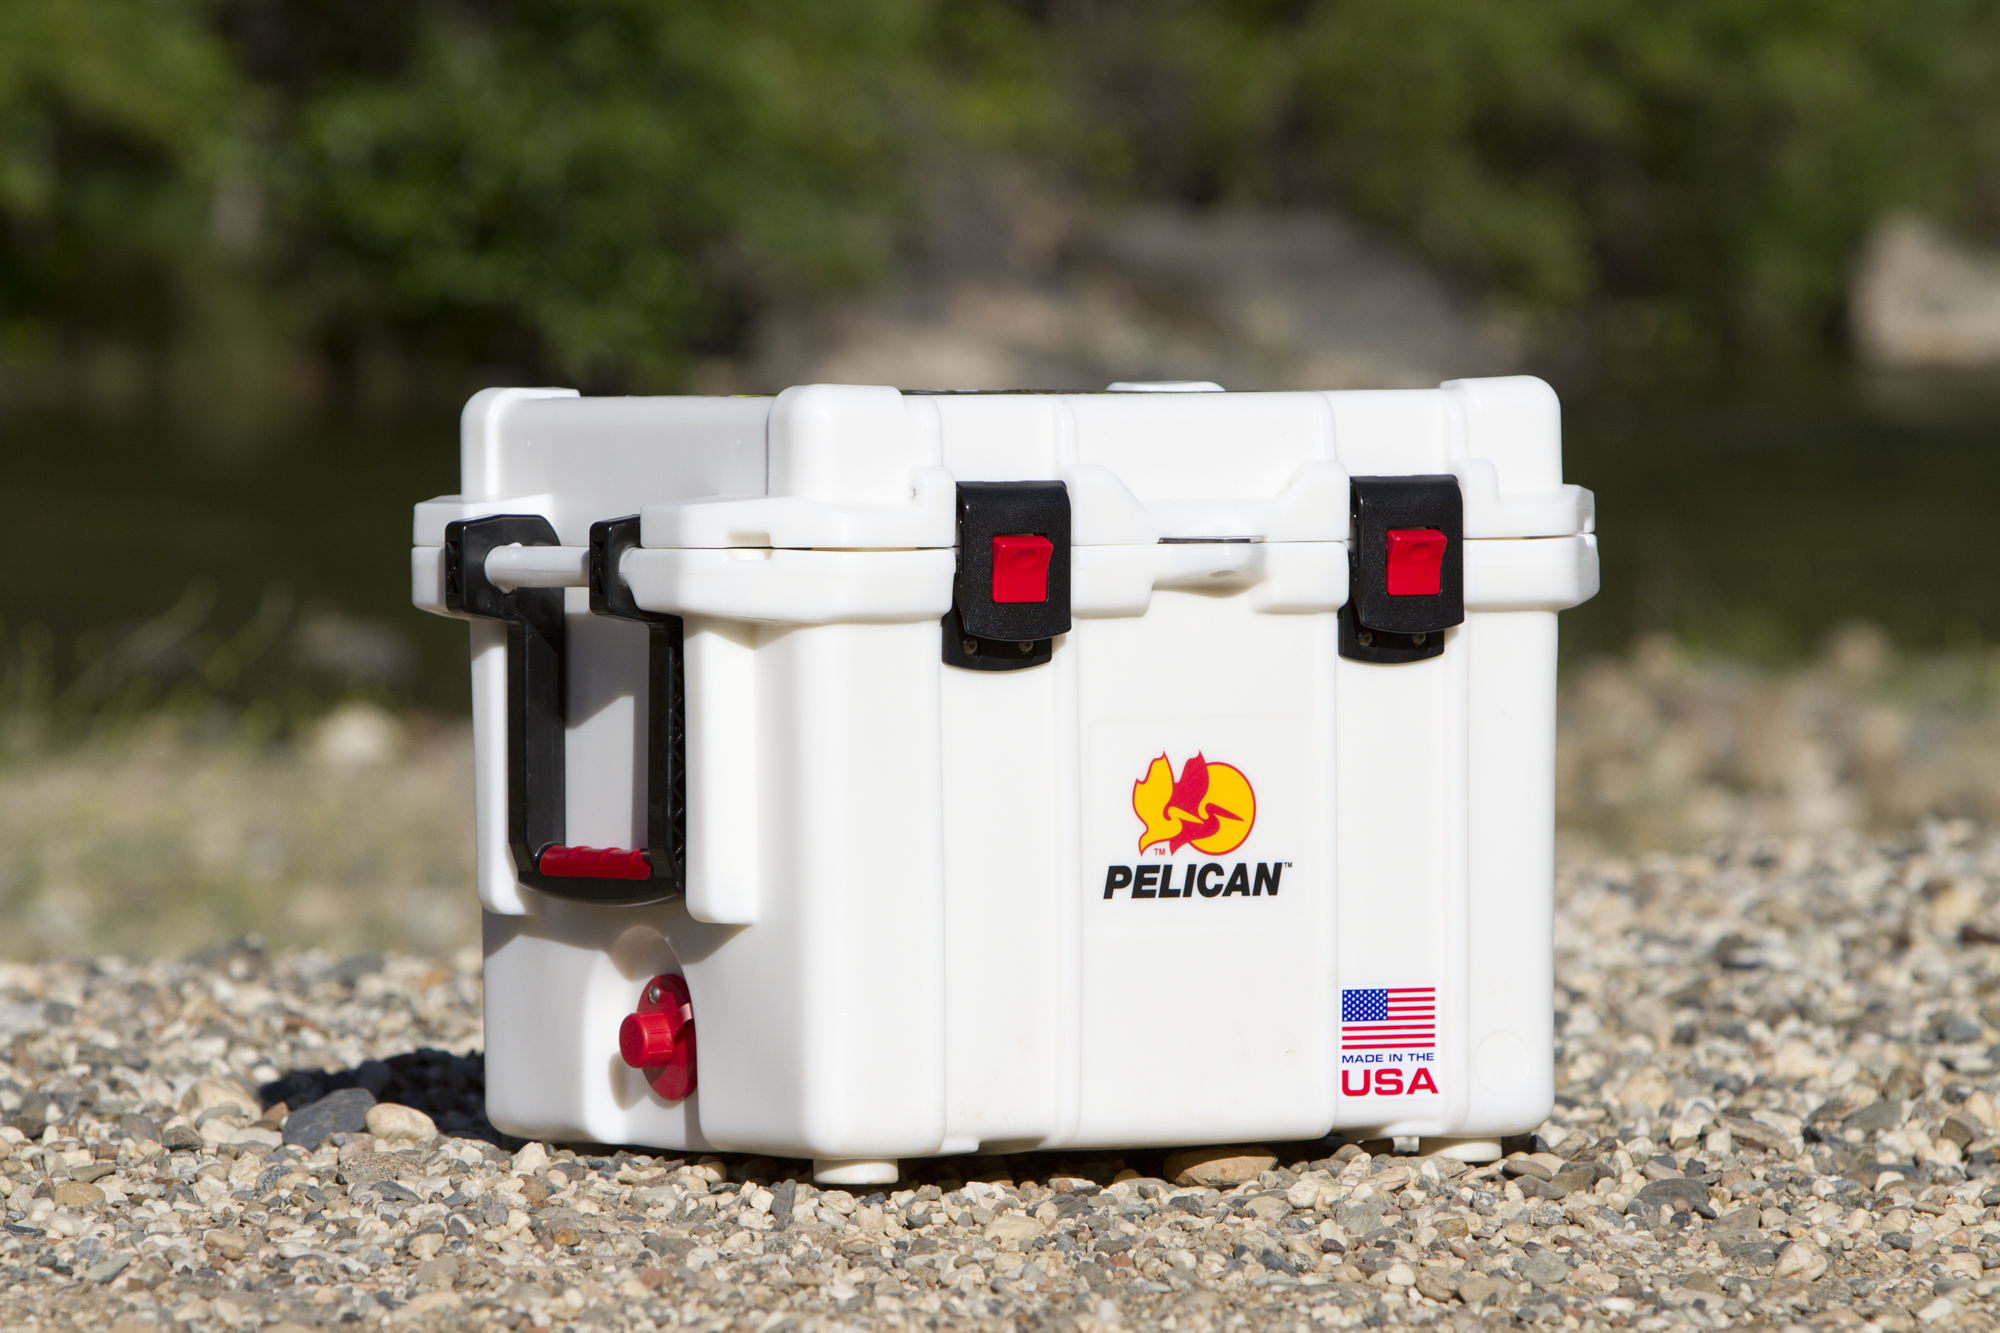 15Fall_Coolers - Pelican 001